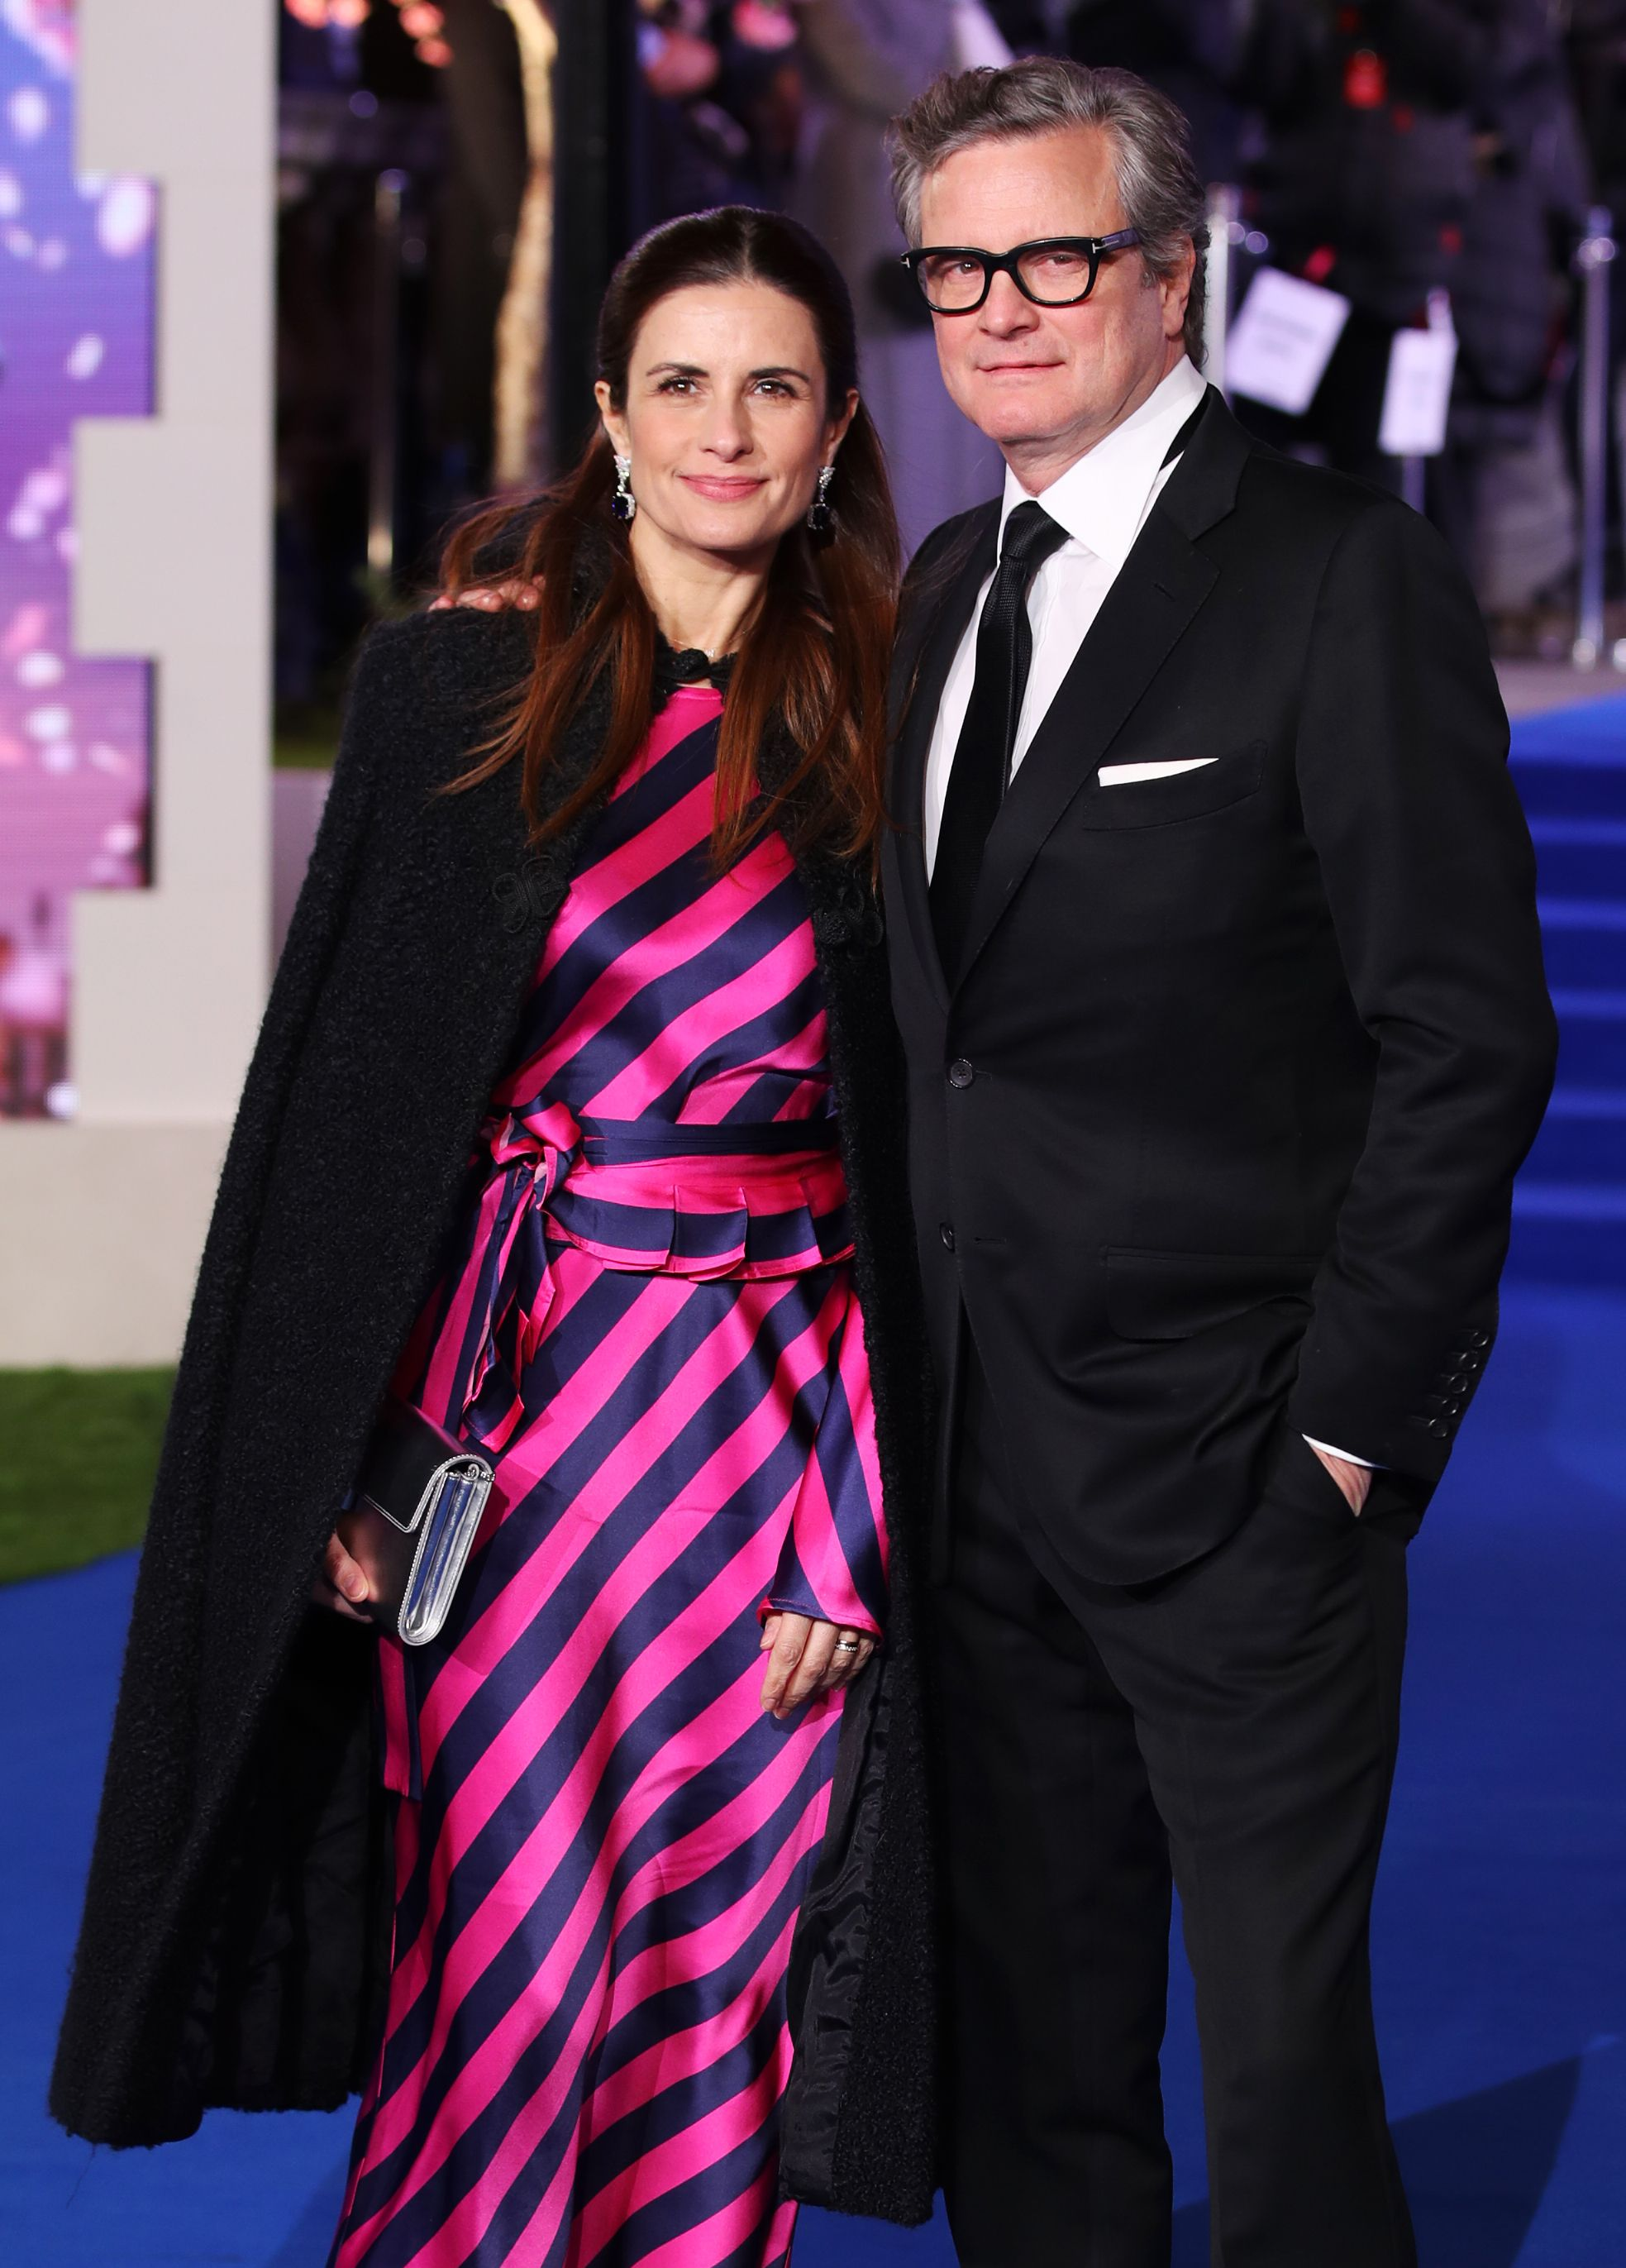 Colin Firth and Livia Giuggioli Split a Year After She Admits to Affair With Her Alleged Stalker